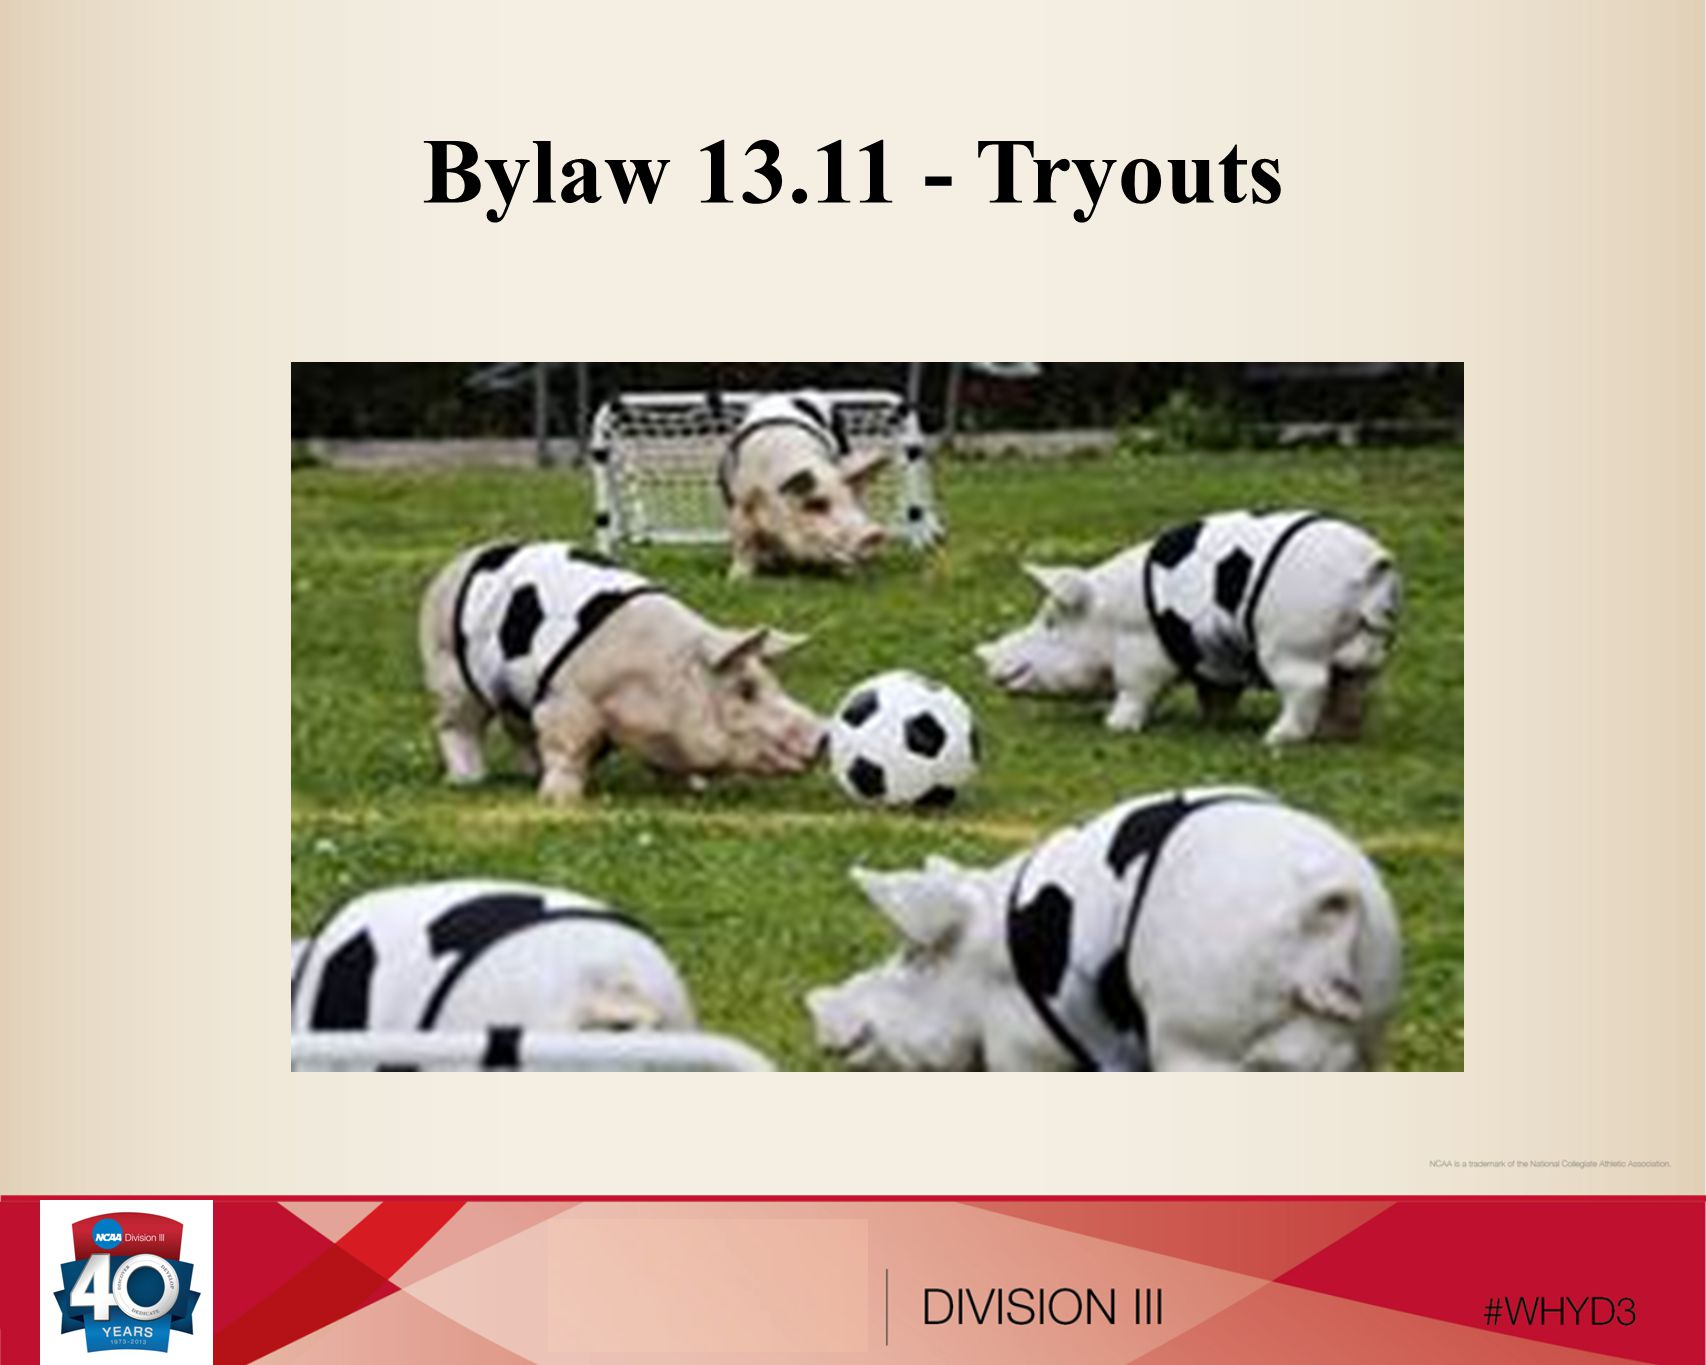 Bylaw 13.11 - Tryouts